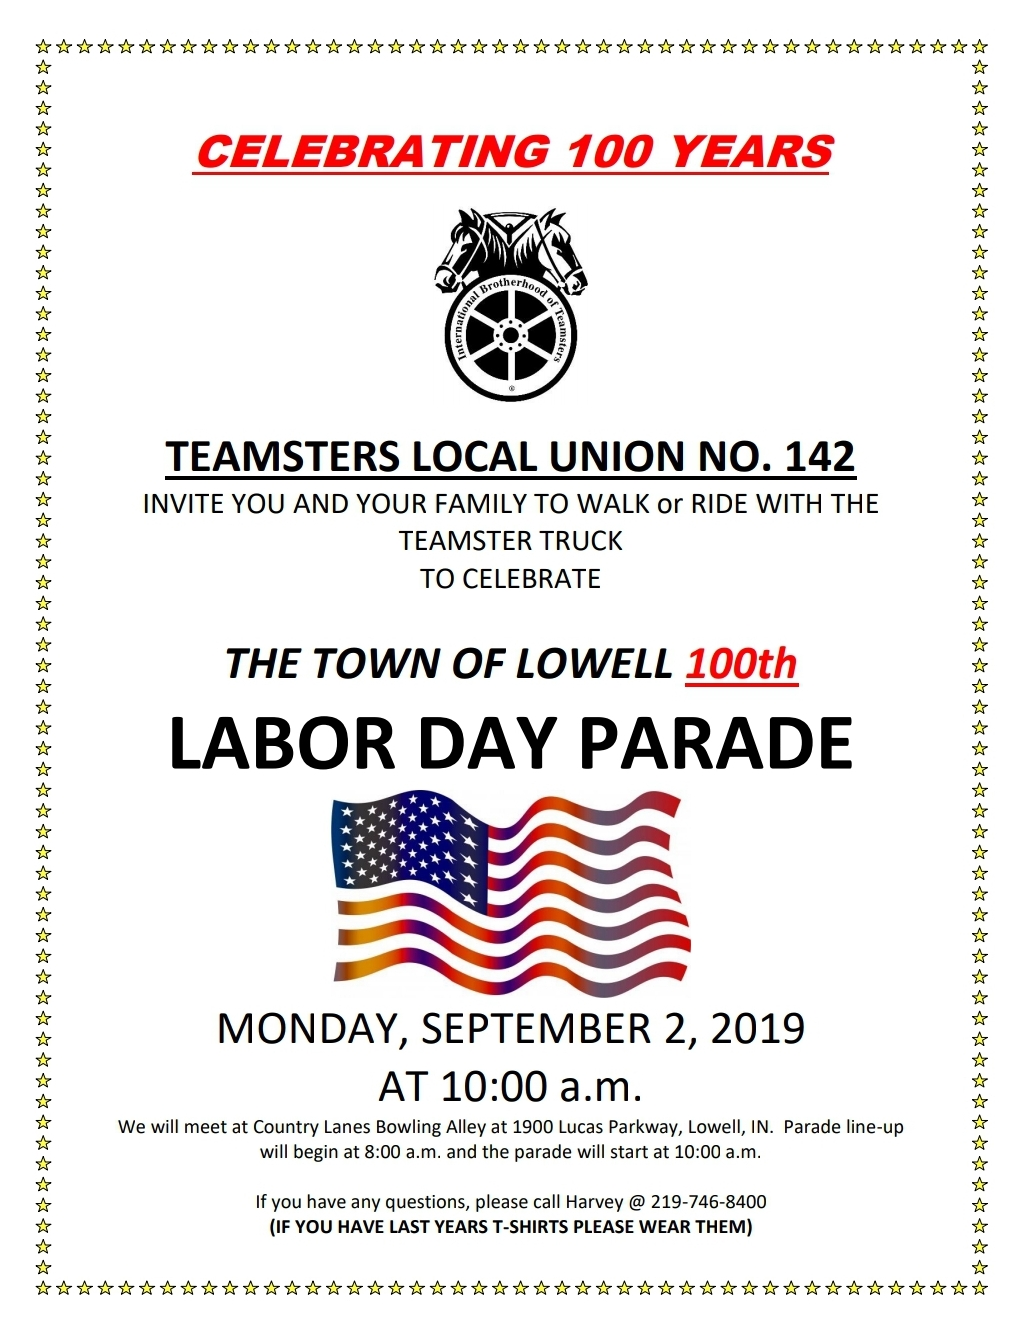 TEAMSTERS LOCAL 142